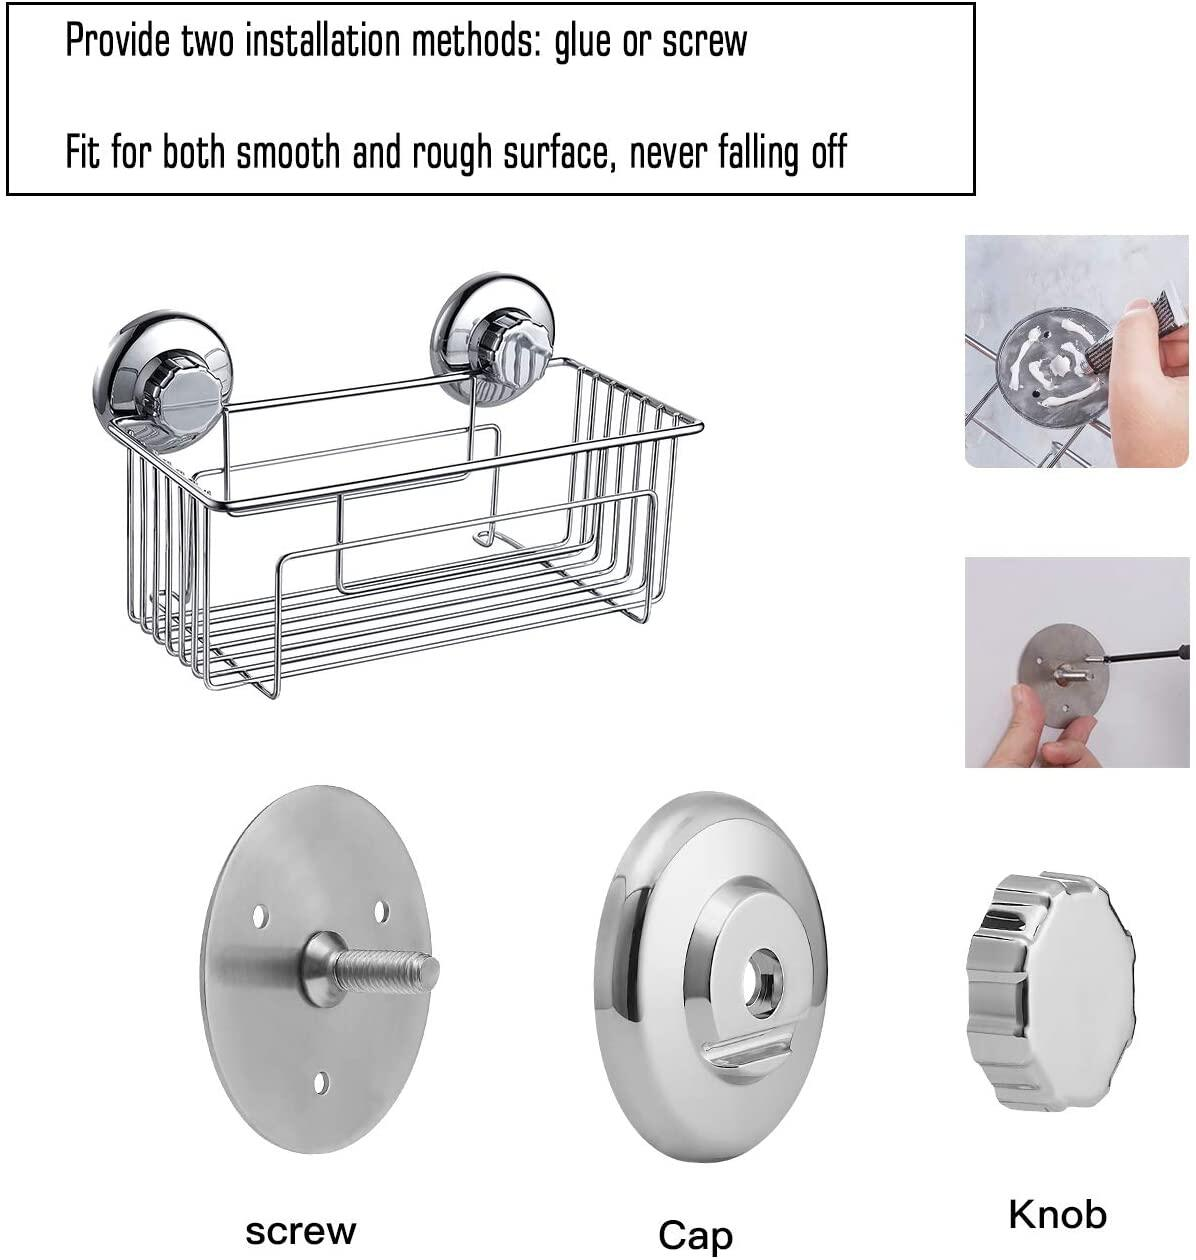 JS Shower Basket, Stainless Steel Bathroom Shower Basket, Bath Storage Organizer Shelves Basket for Kitchen and Bathroom Accessories,Self-Adhesive with Glue or Wall Mount with Screw JS Shower Basket, Stainless Steel Basket at smart-join.com Shower Basket